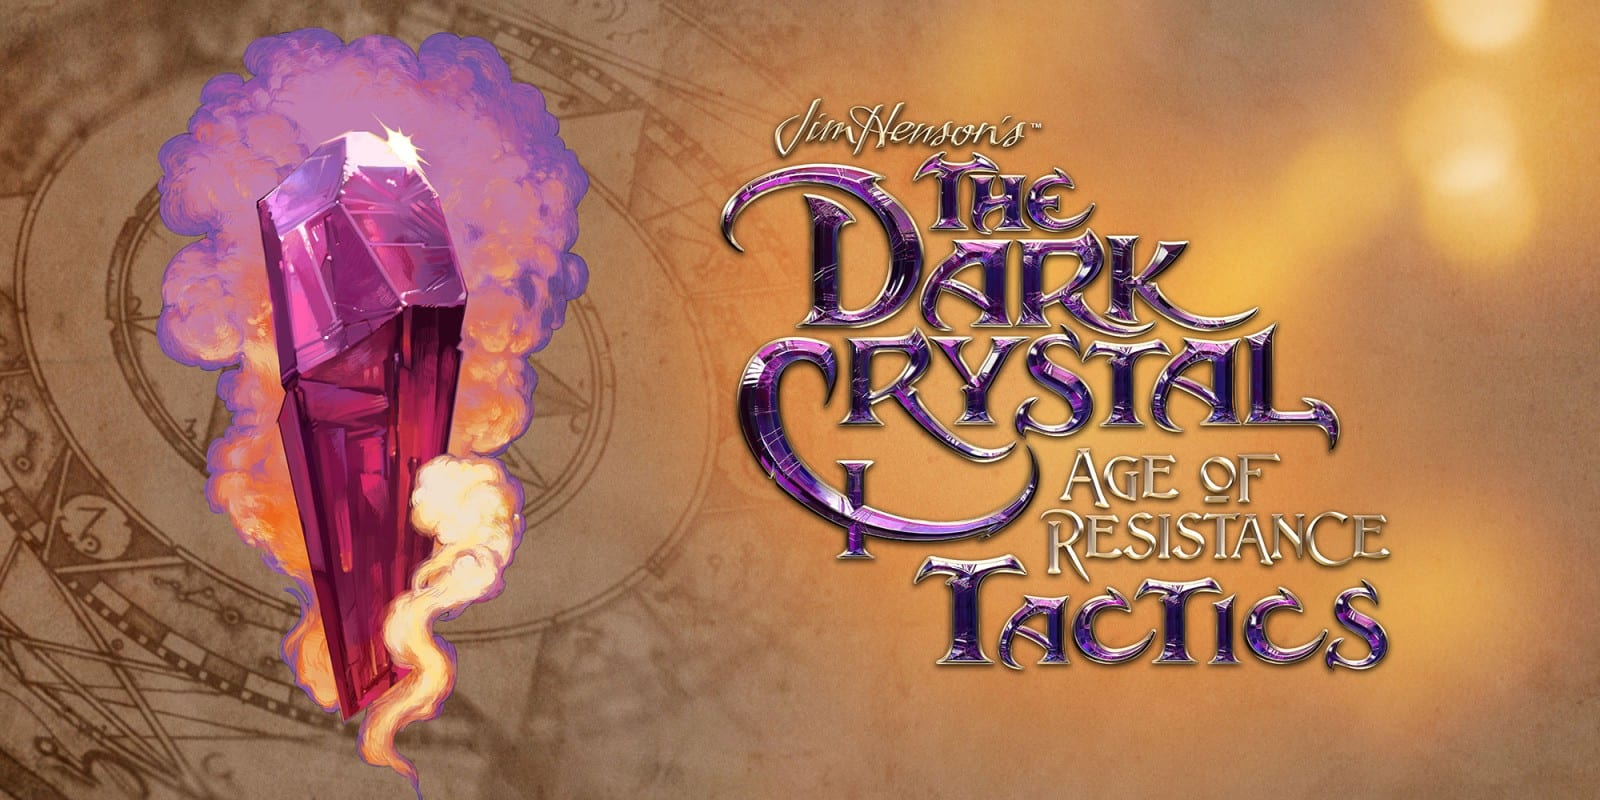 Jim Henson's The Dark Crystal Age of Resistance Tactics Critic Review